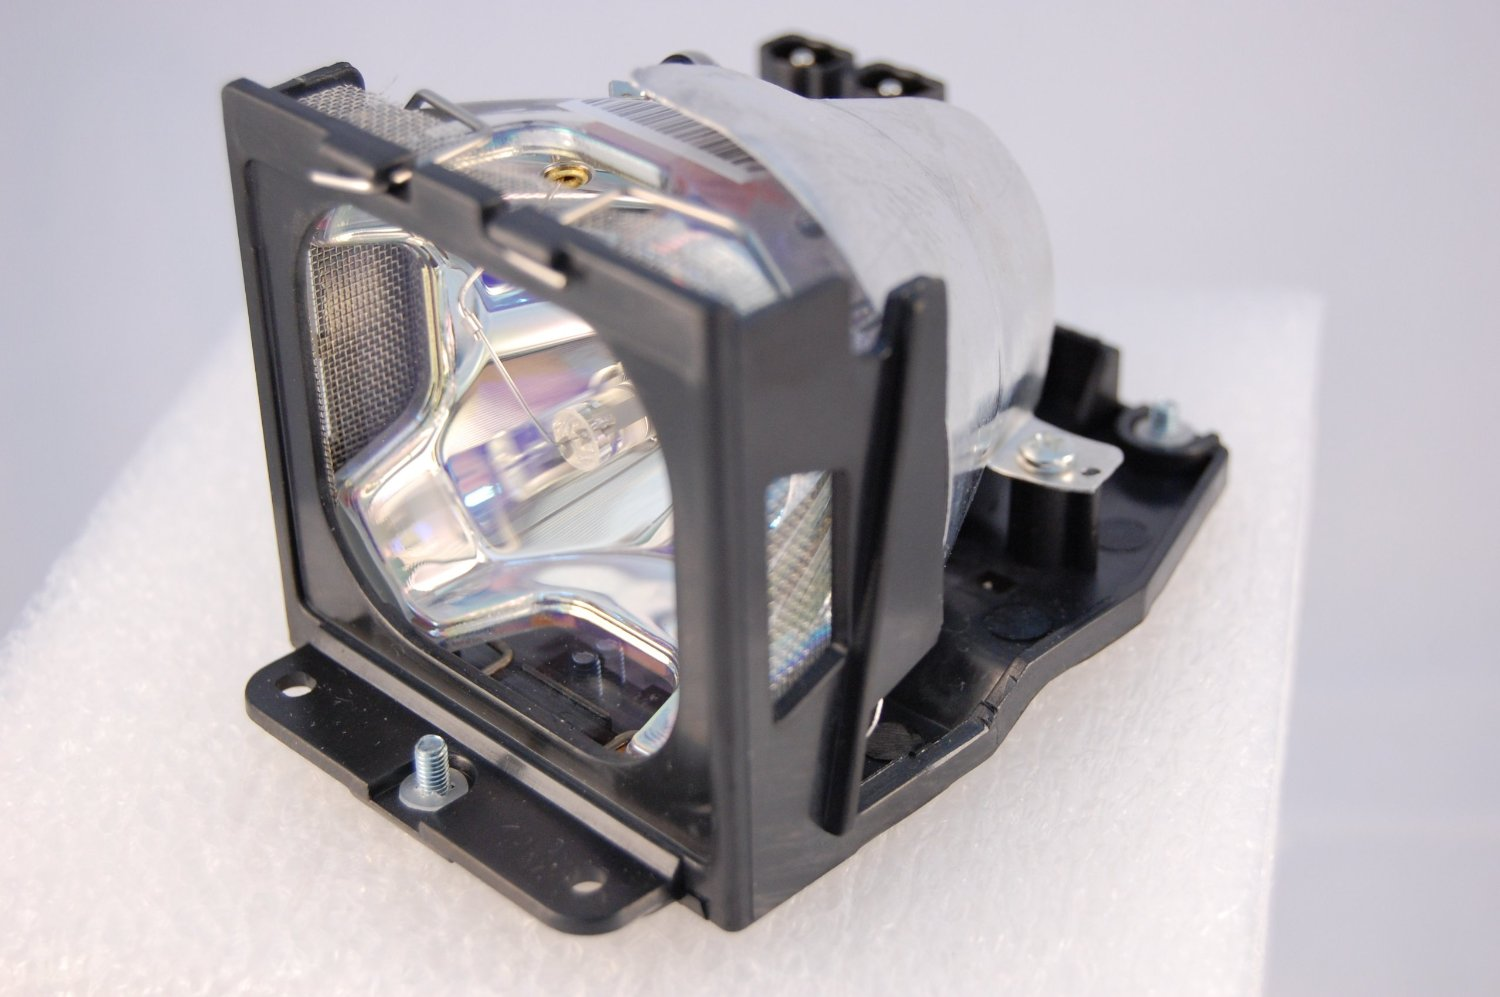 TLPLV1 TLP-LV1 for TOSHIBA TLP-S30 TLP-S30M TLP-S30MU TLP-S30U TLP-T50 TLP-T50M TLP-T50MU TLP-T50U Projector Lamp Bulb With Case free shipping tlplv1 replacement projector bare lamp for toshiba tlp s30 tlp s30m tlp s30mu tlp s30u tlp t50 tlp t50m